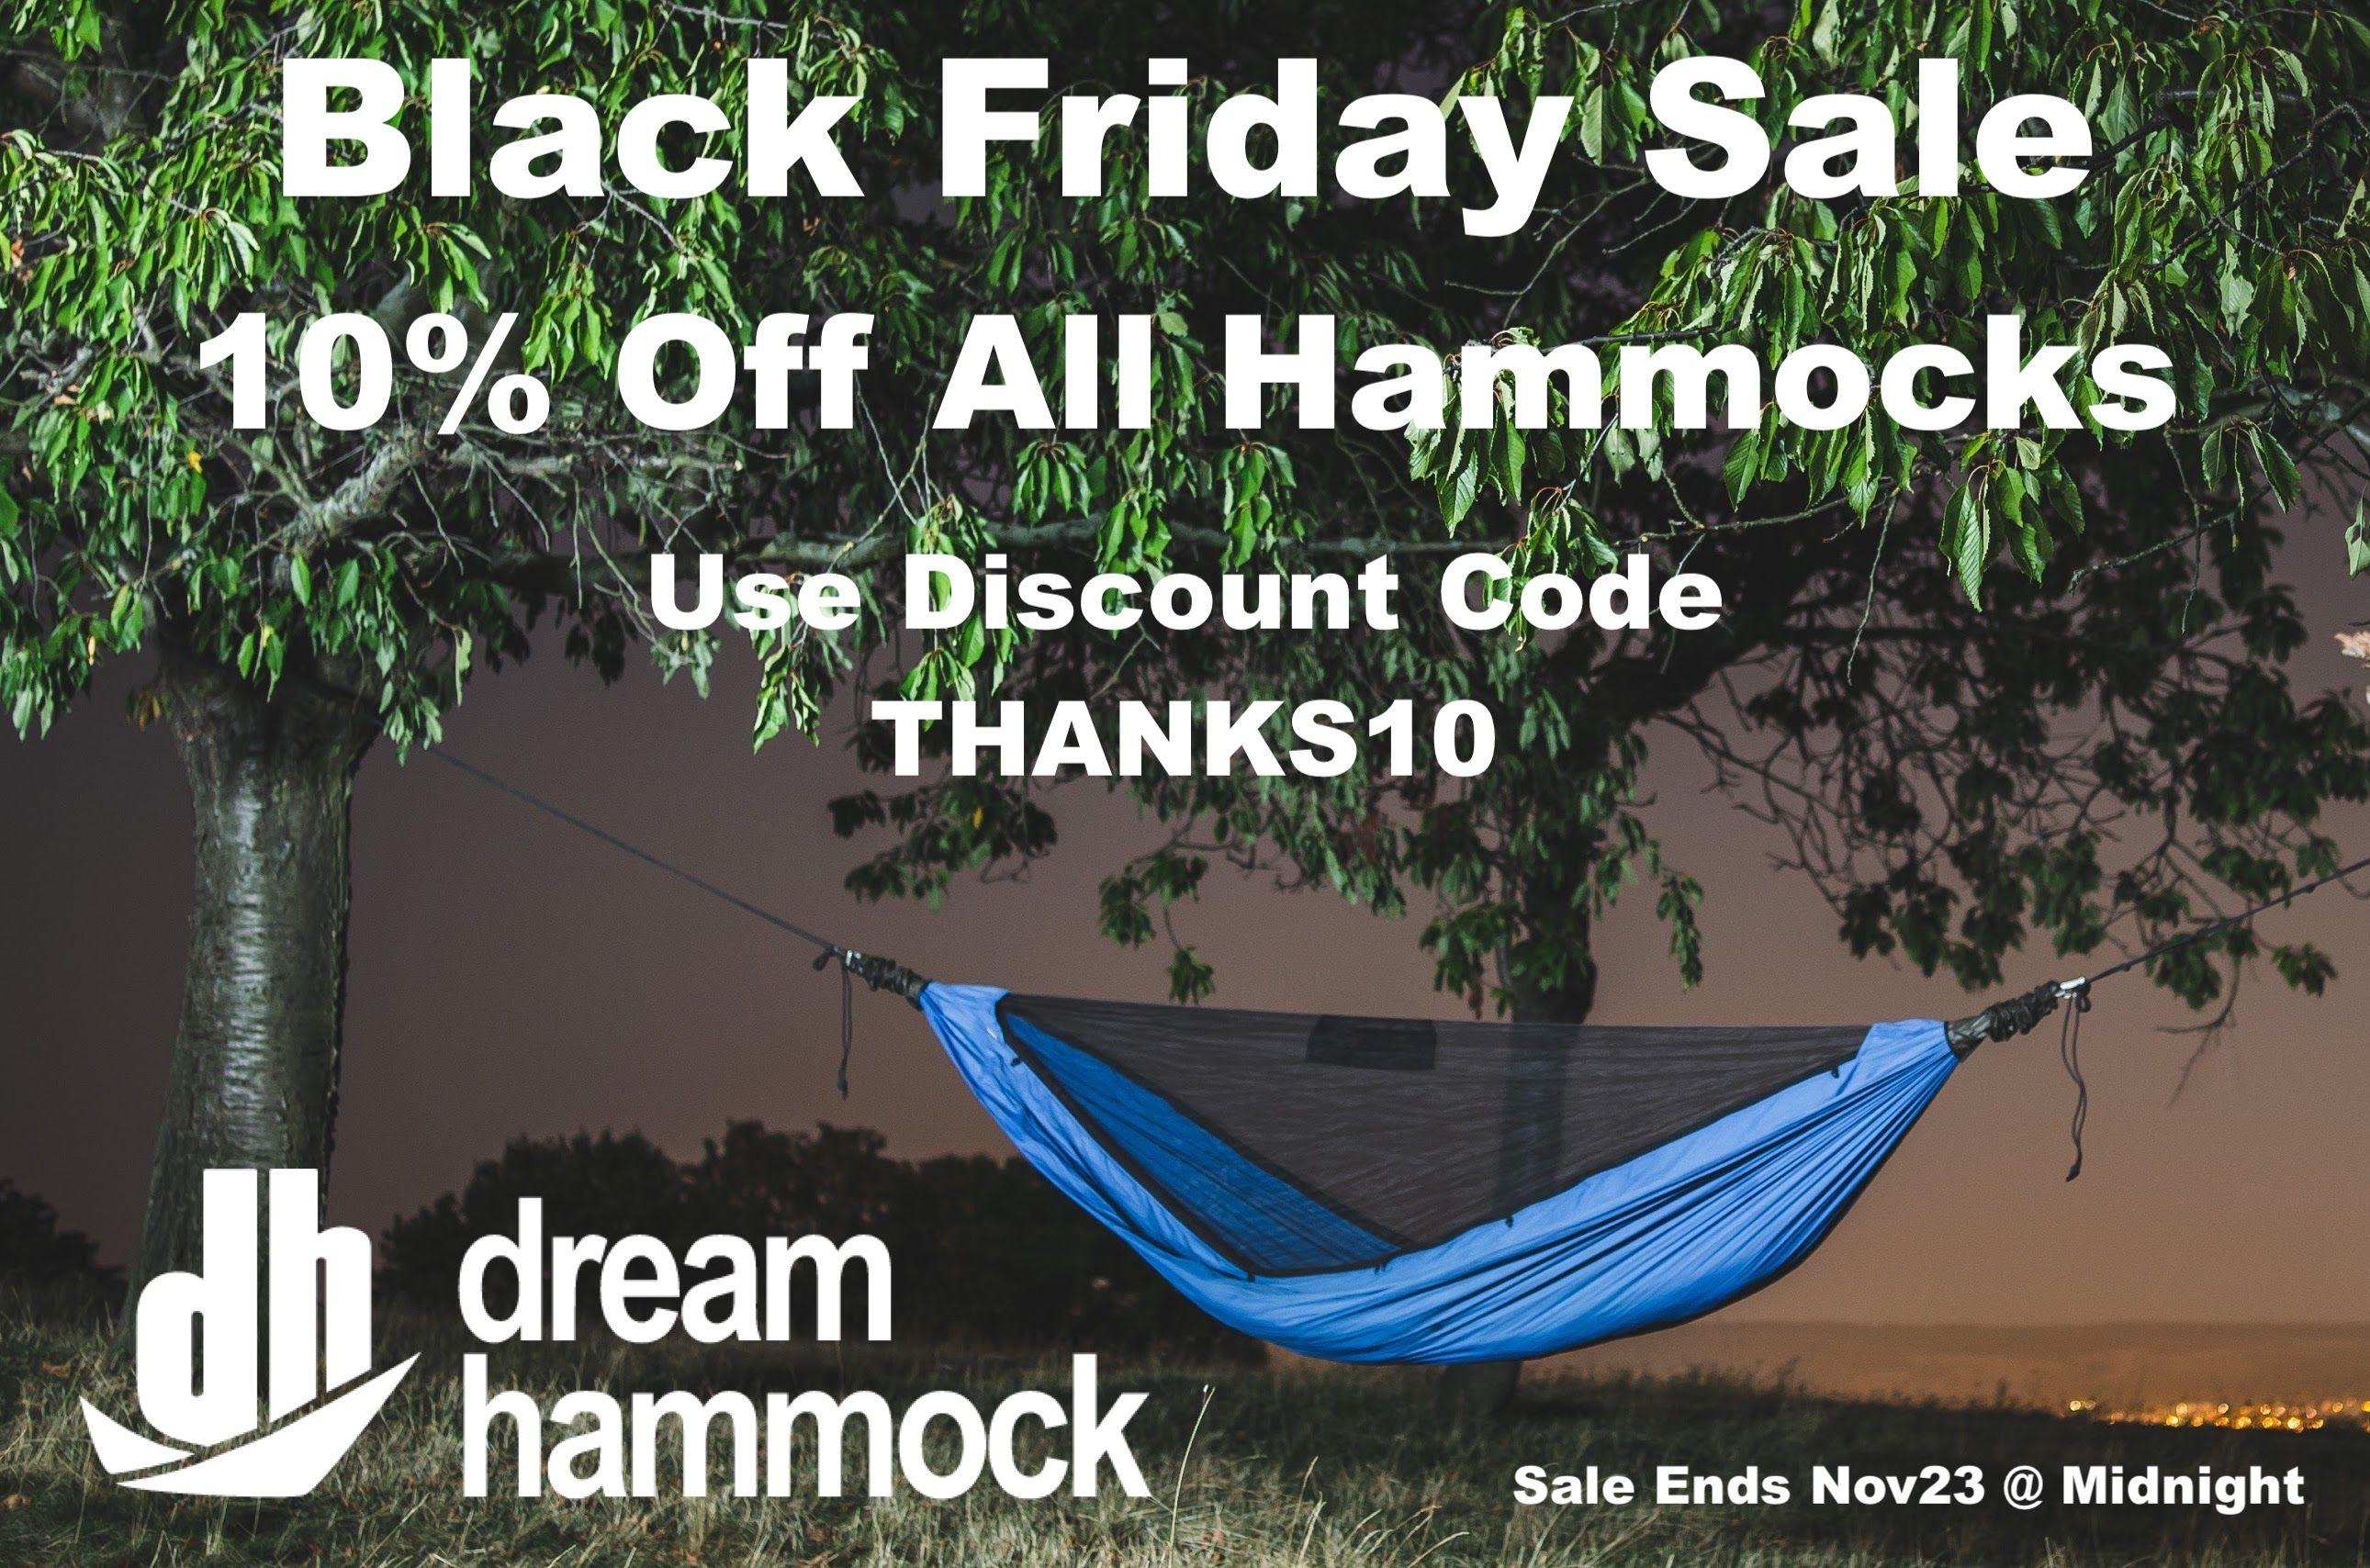 Pin By Dream Hammock Llc On Happenings With Images Hammock Backpacking Hammock Black Friday Sale